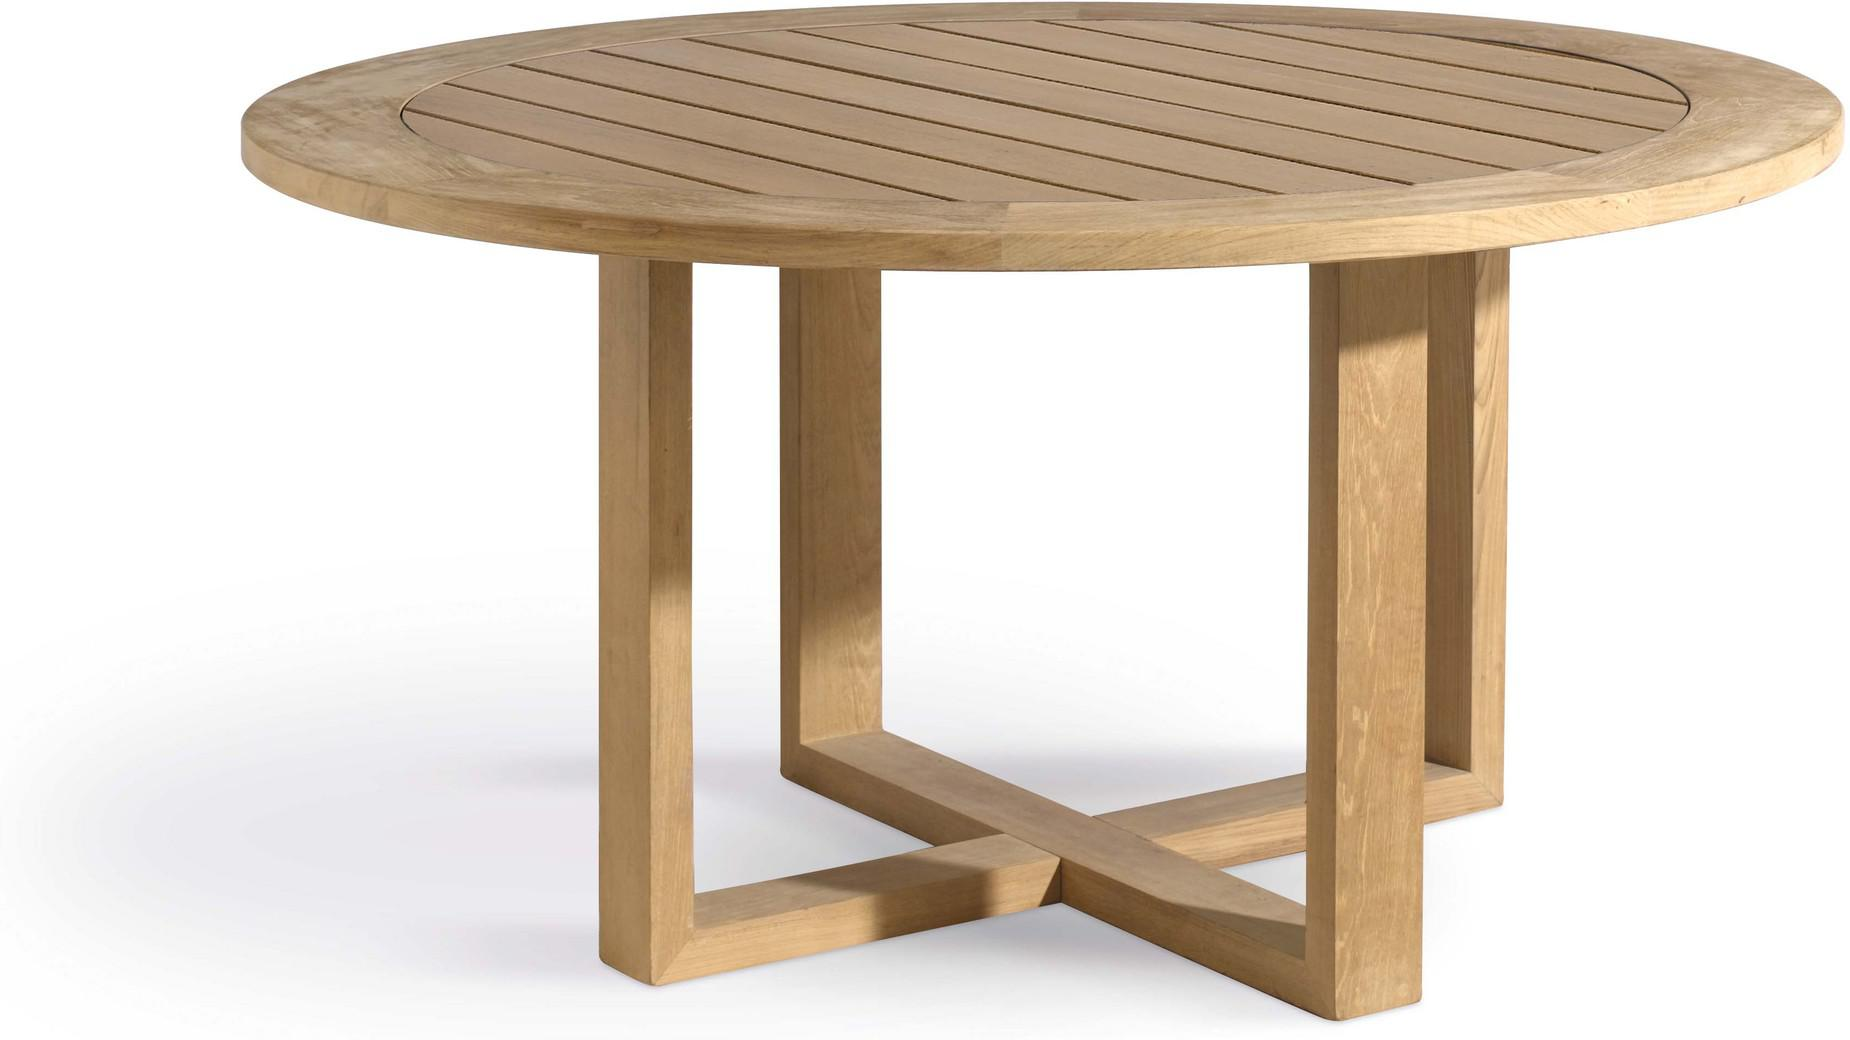 Siena Dining table - Teak - Teak 150